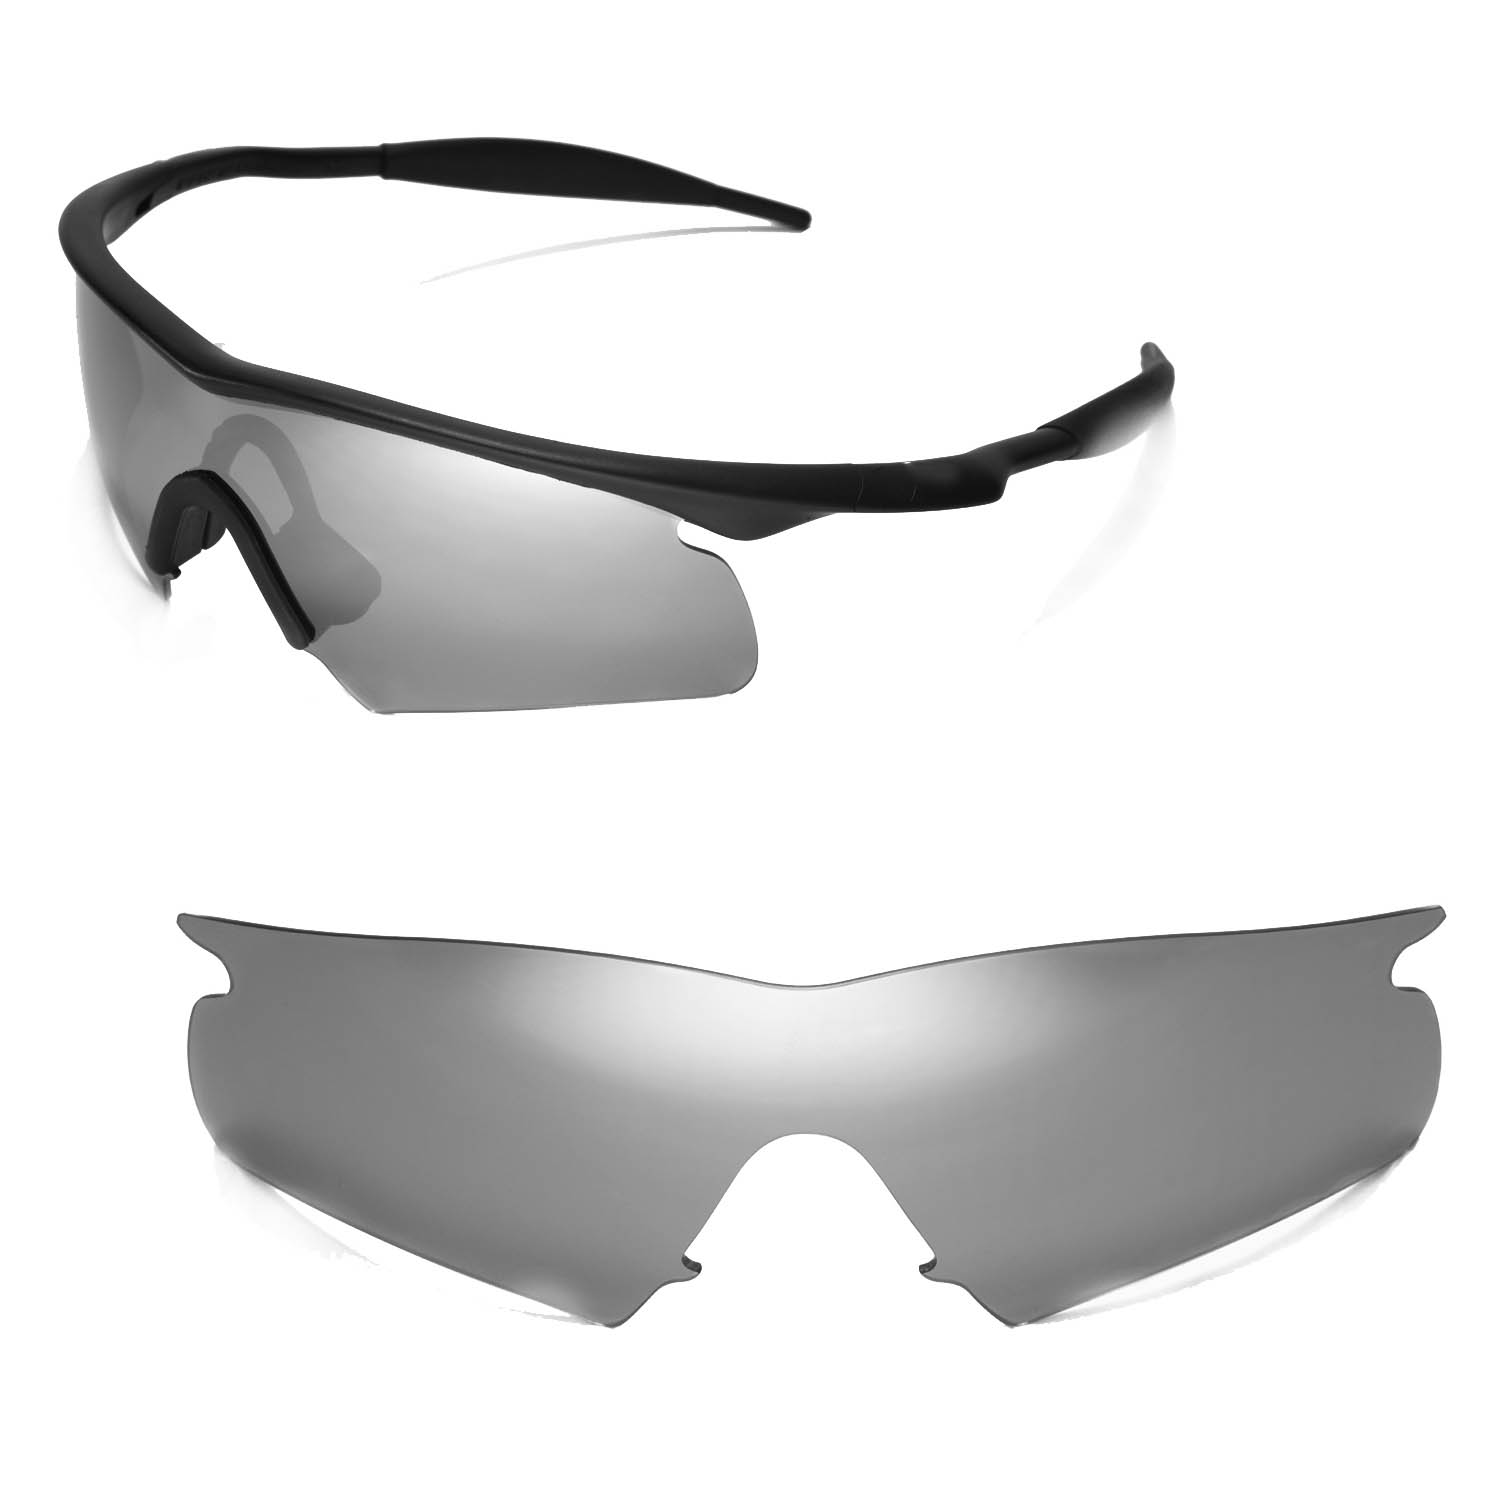 14d486da294 Details about New Walleva Polarized Titanium Replacement Lenses For Oakley  New M Frame Hybrid